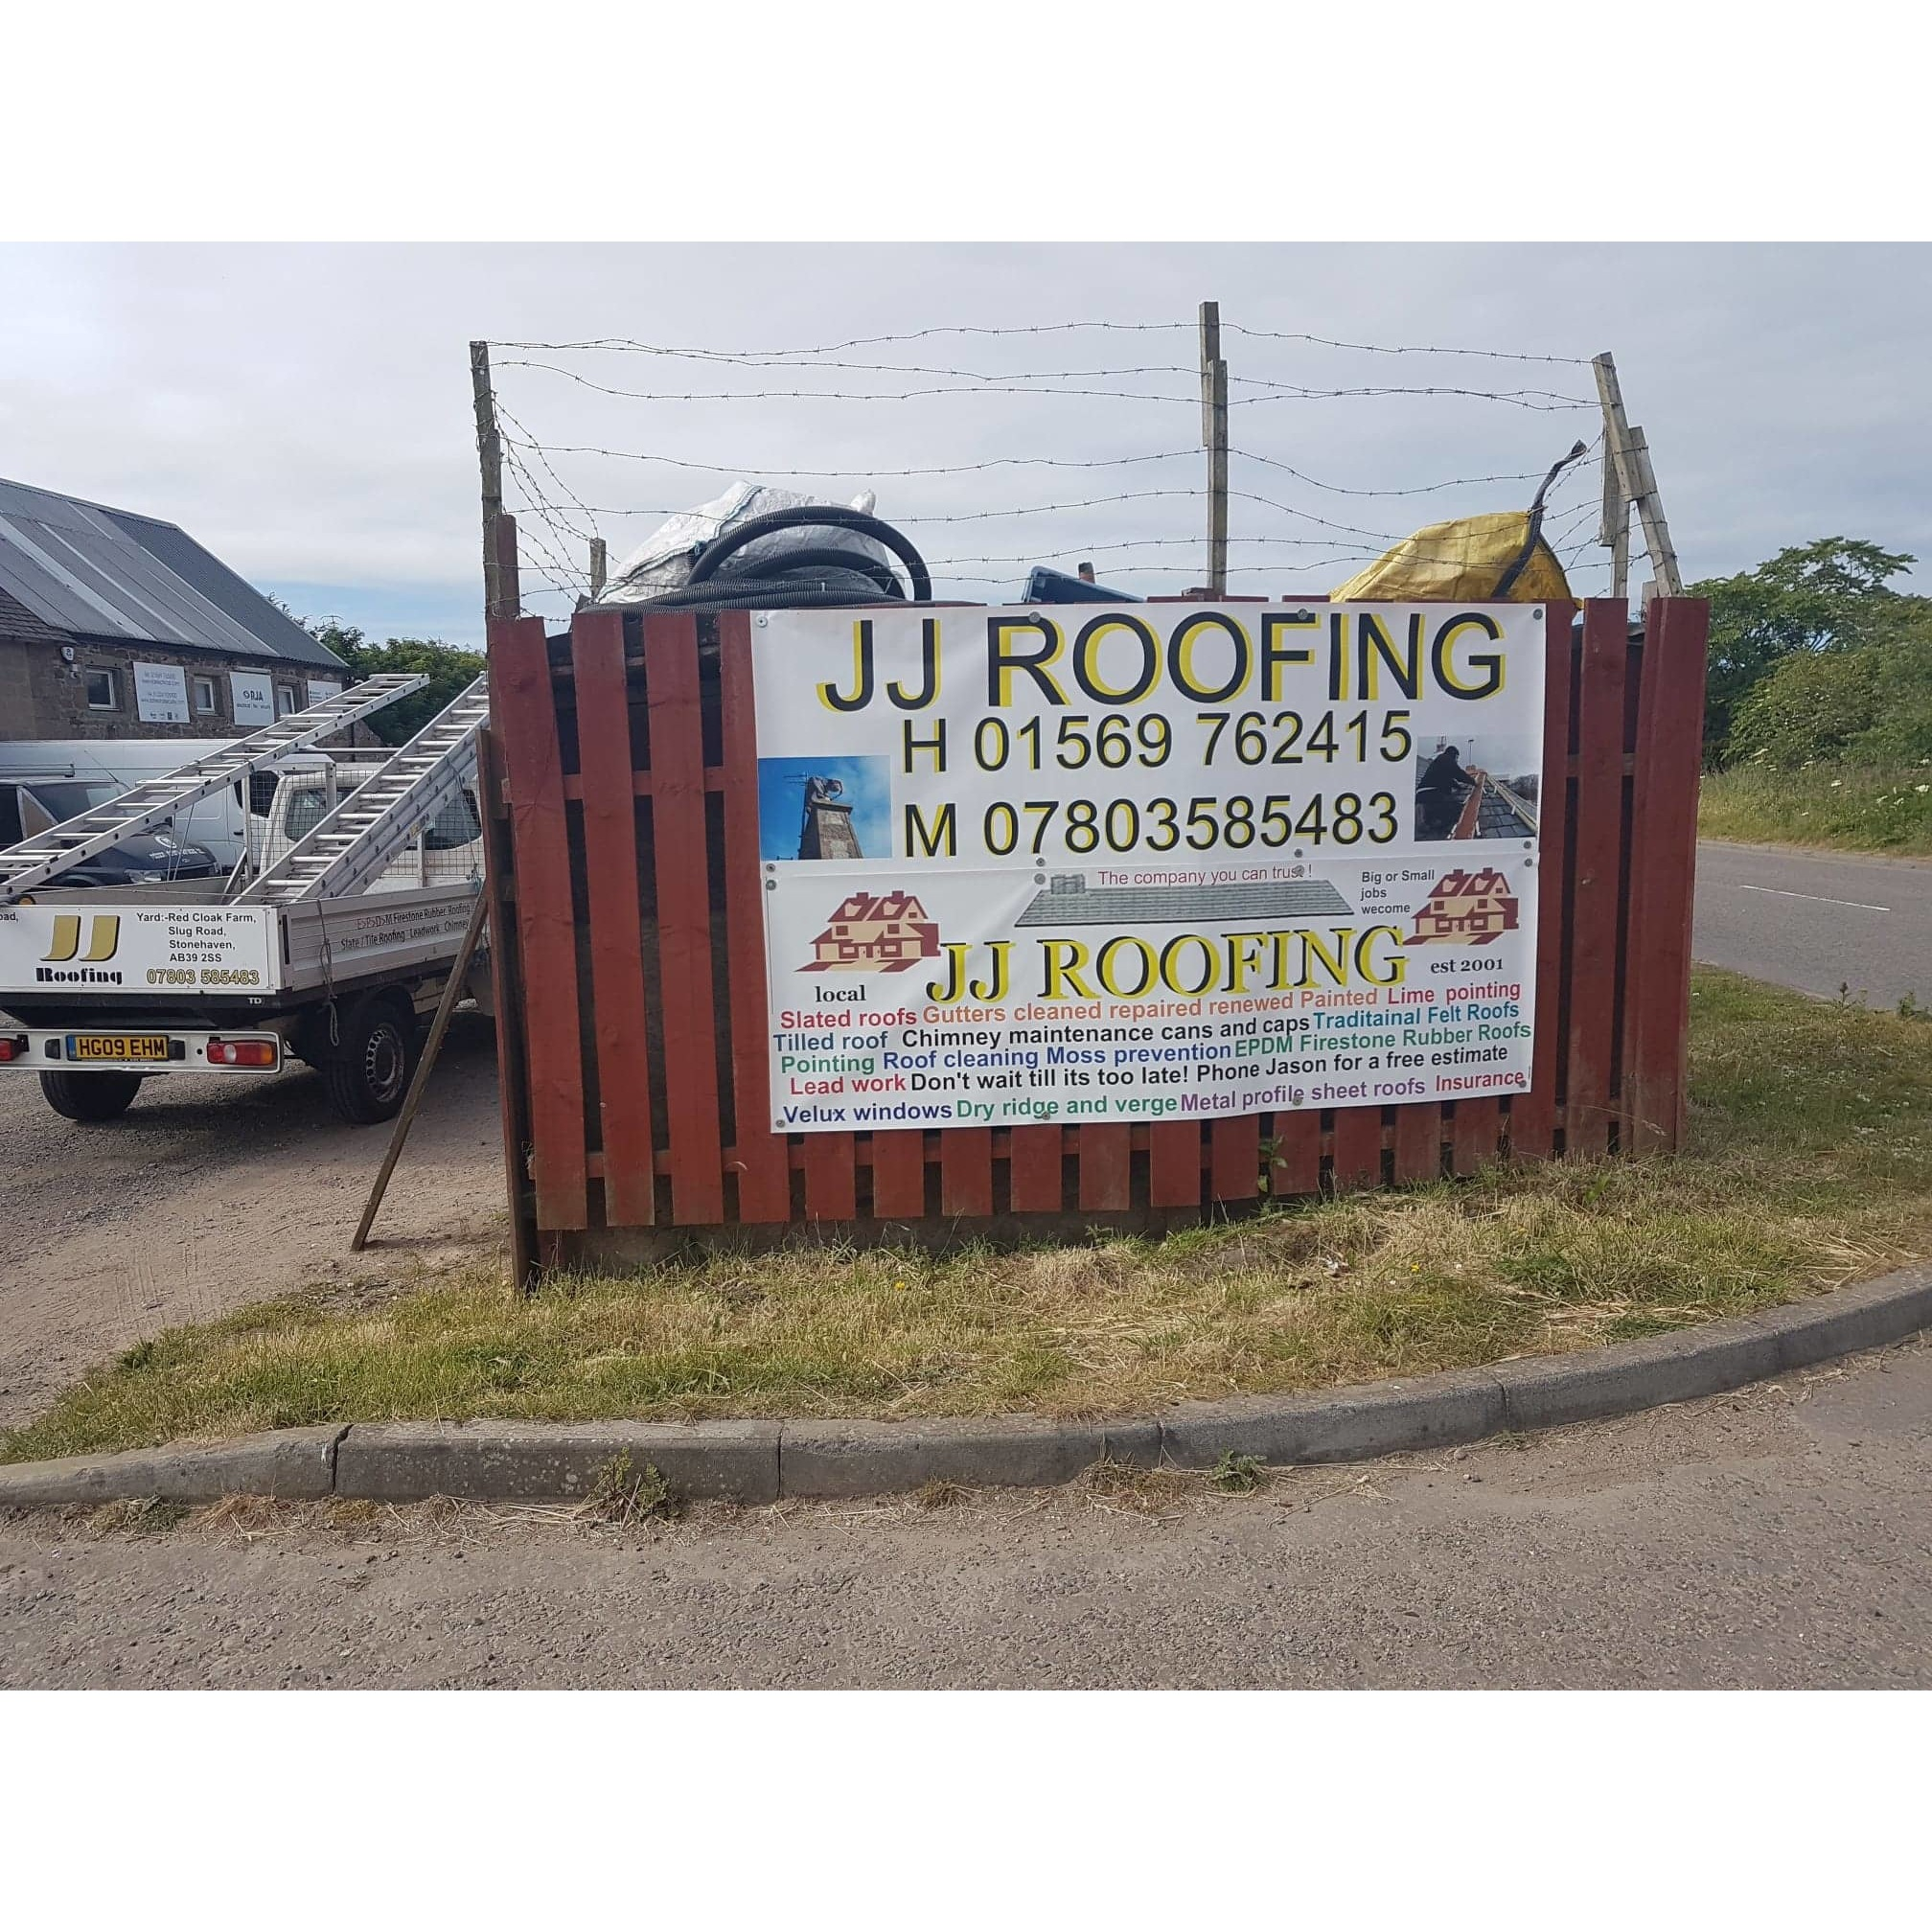 Jj Roofing Roofing Contracting Services In Stonehaven